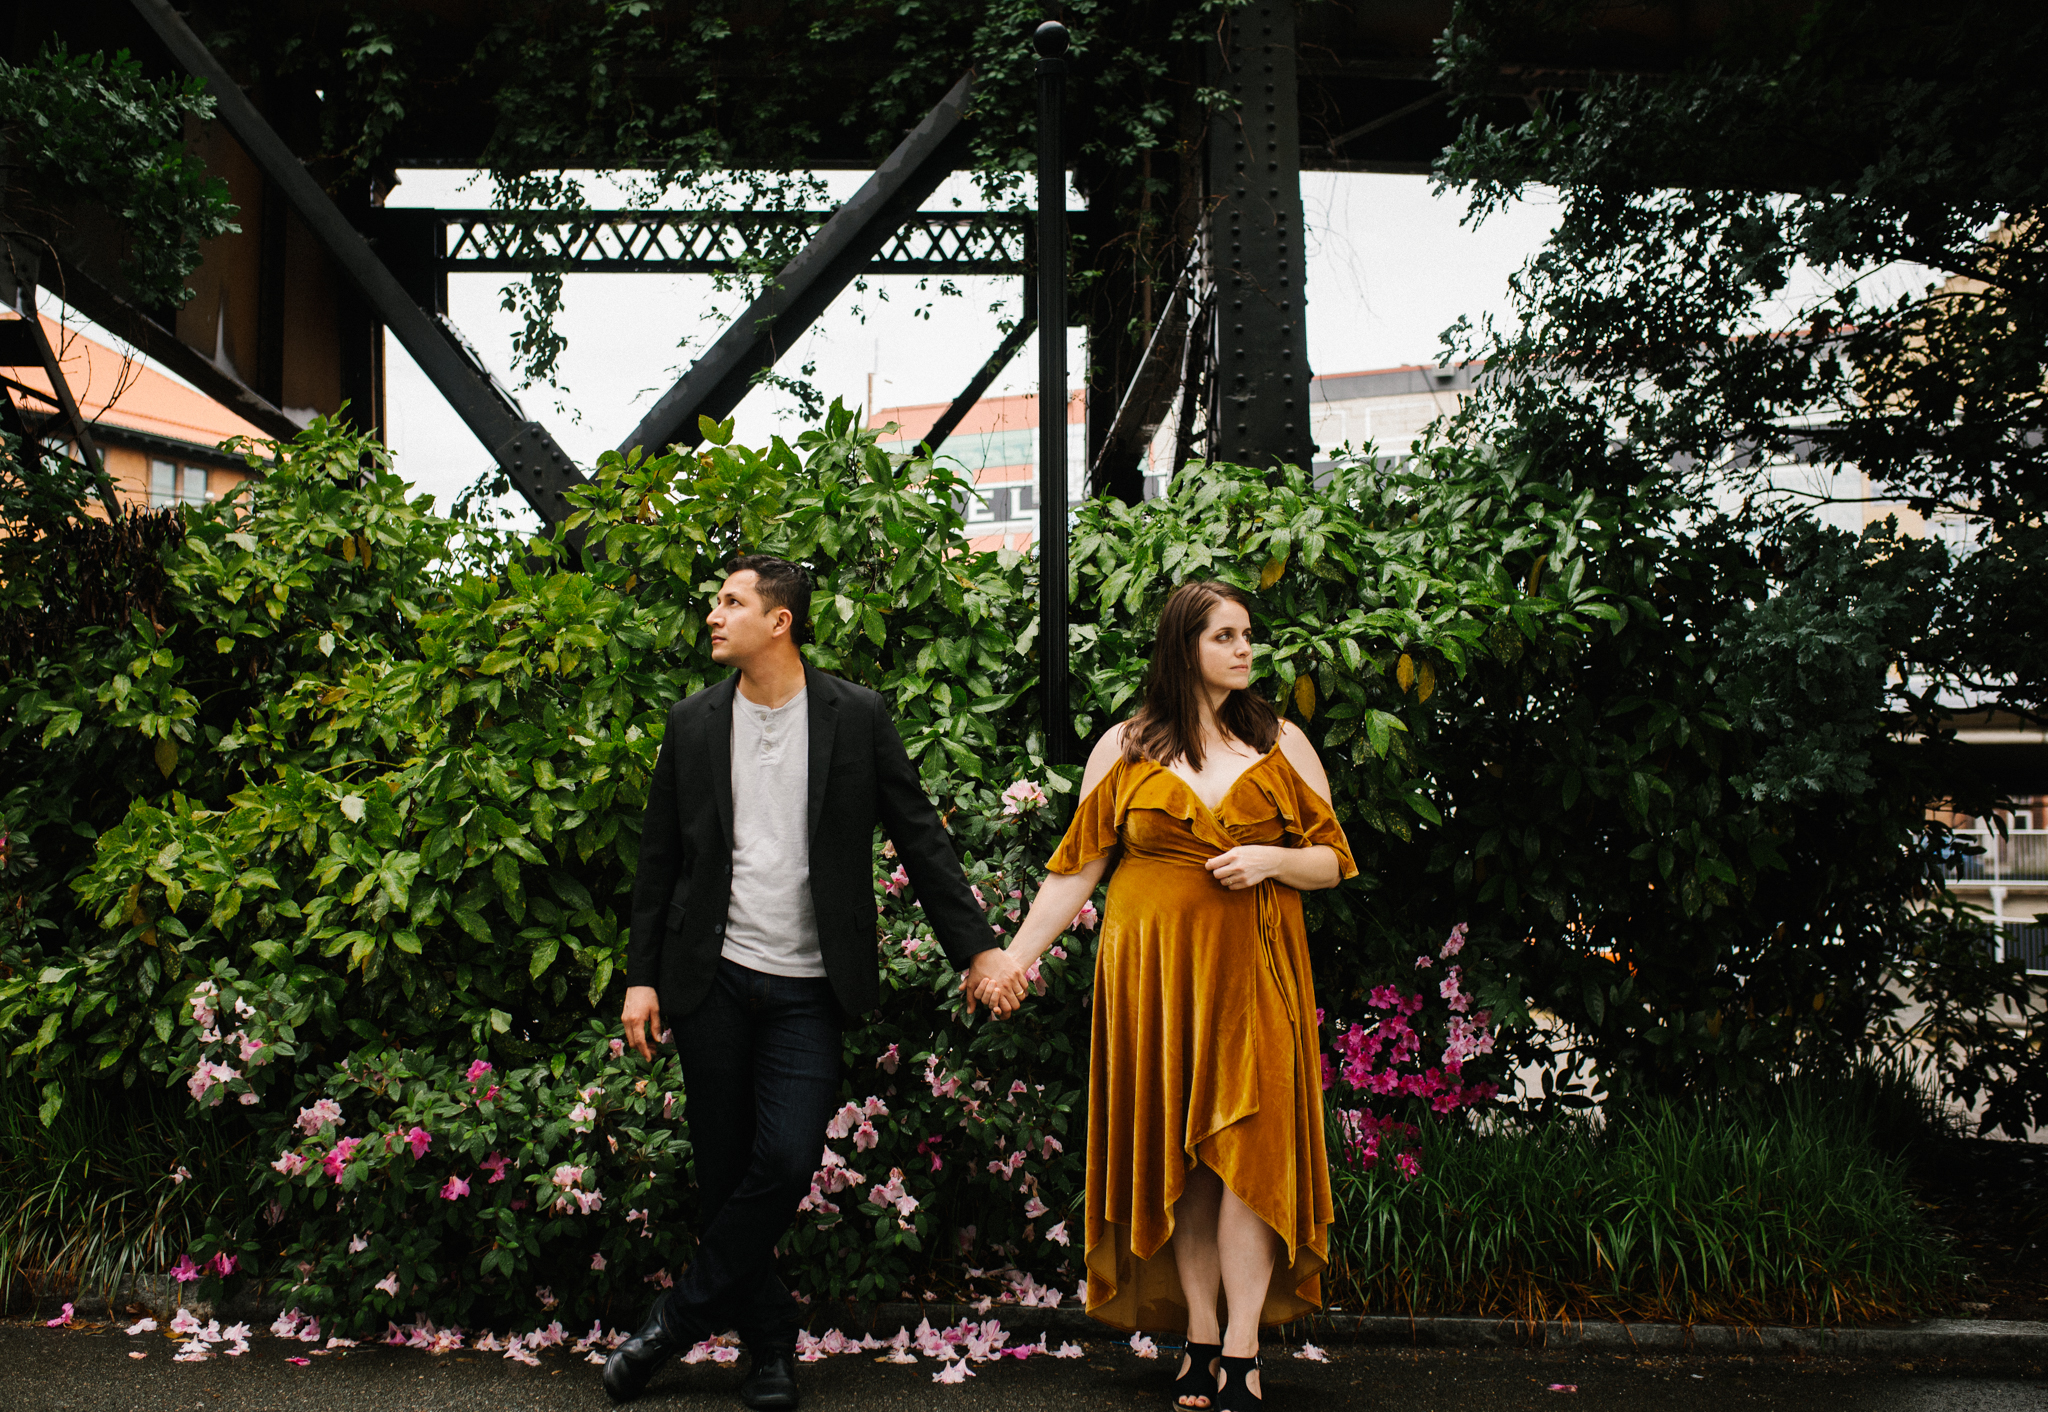 rachel_alex_richmond_engagement_session_mainstreetstation_rebeccaburtphotography-62.jpg